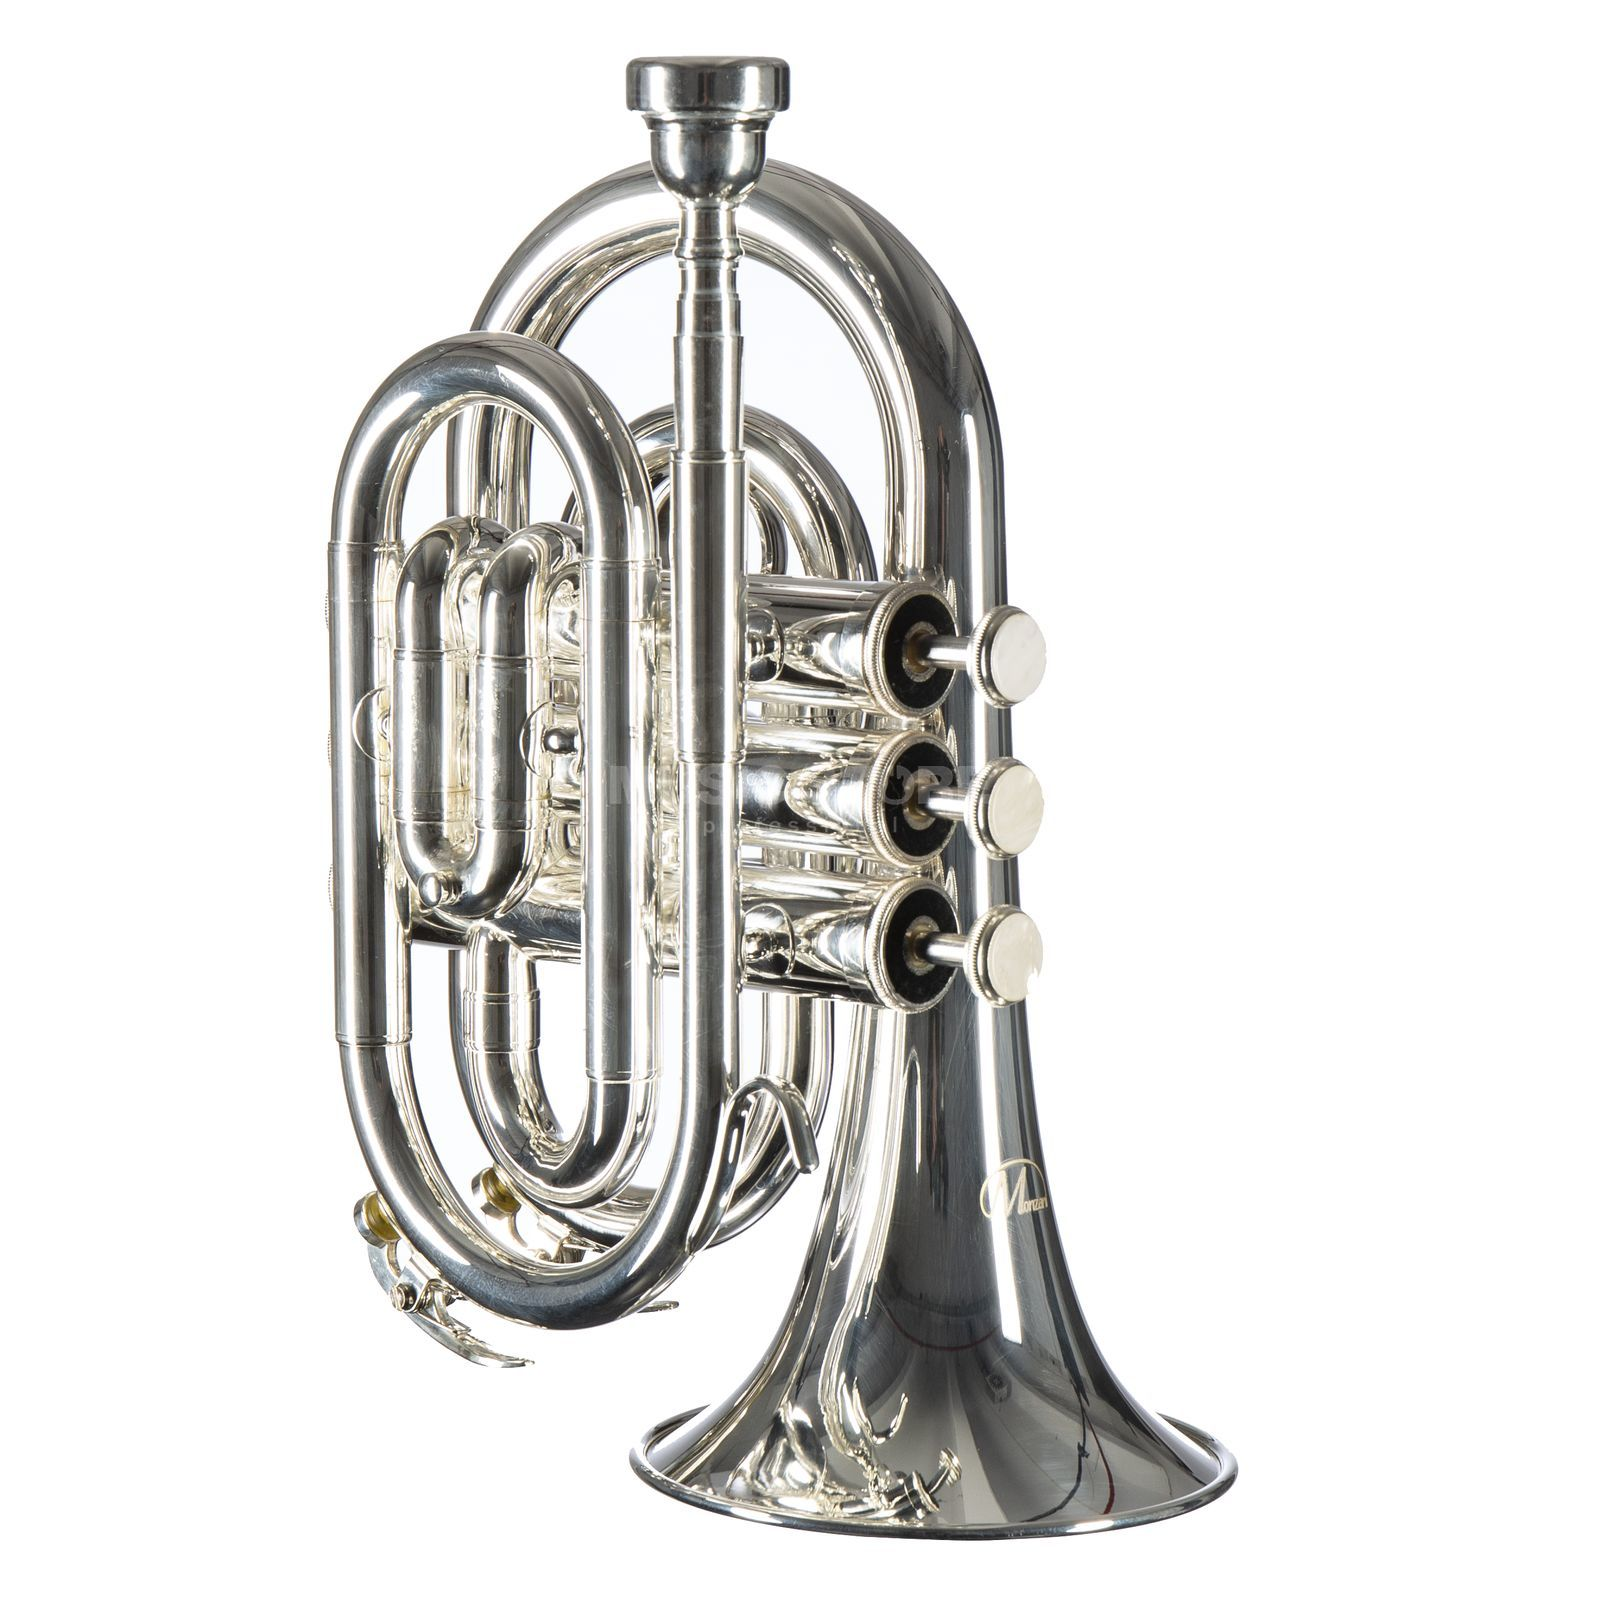 Monzani MZMT-500S Bb-Pocket Trumpet Silverplate Изображение товара